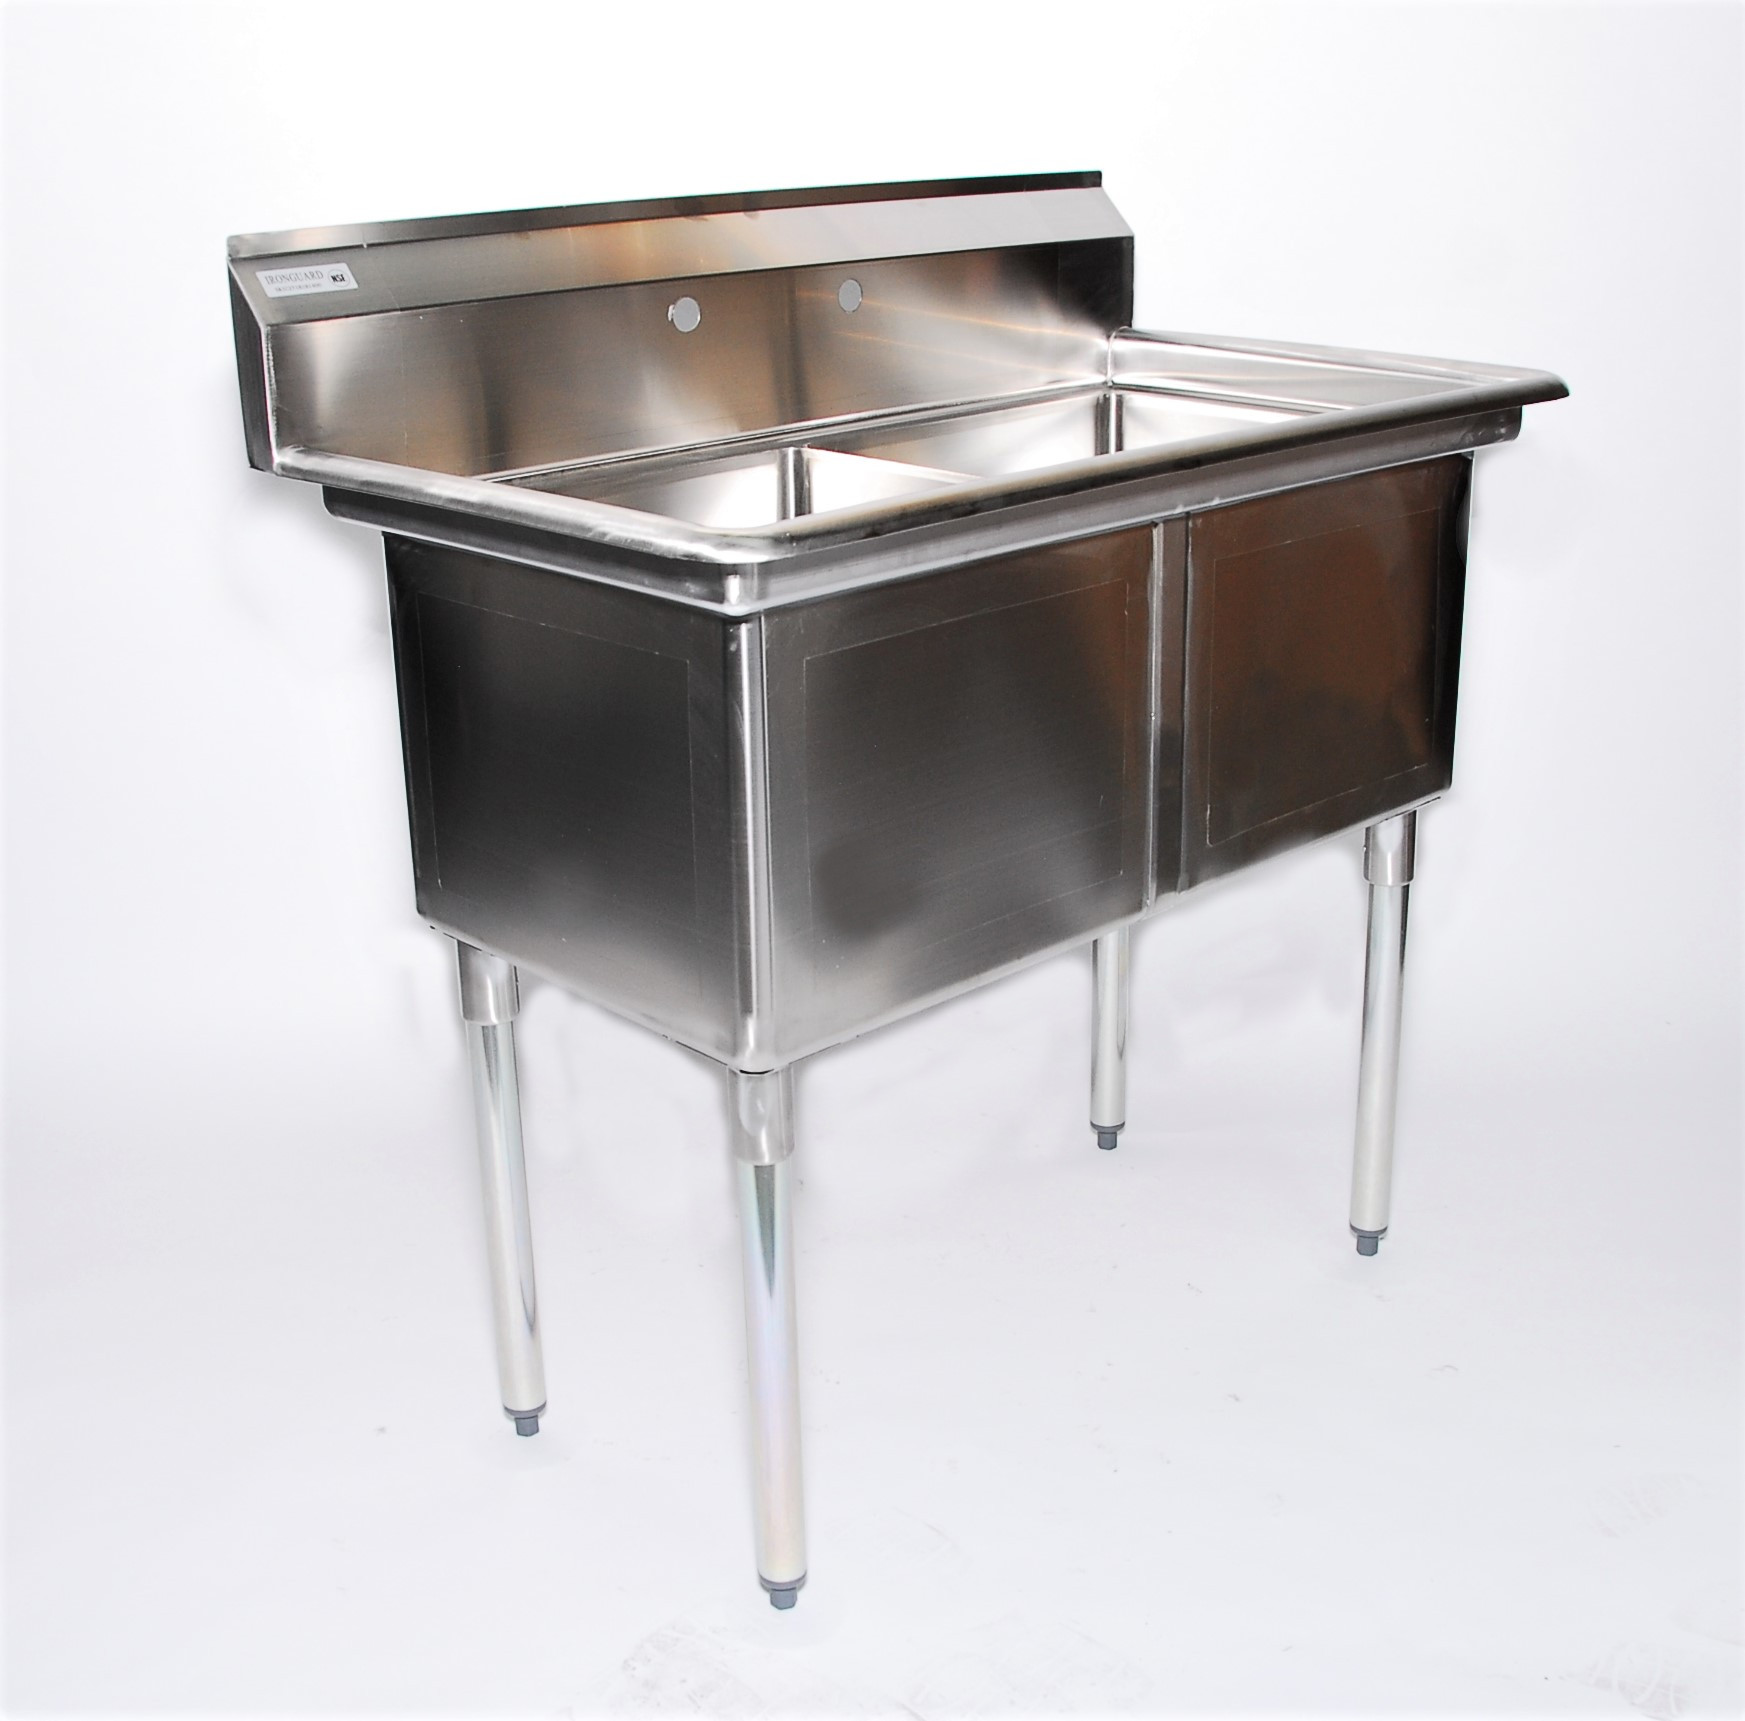 Iron Guard-Sink 2 Comp  24 X 24 X 14 with No Drainboards 304 Top Galv Legs (SKIC2T24241400) | Public Kitchen Supply